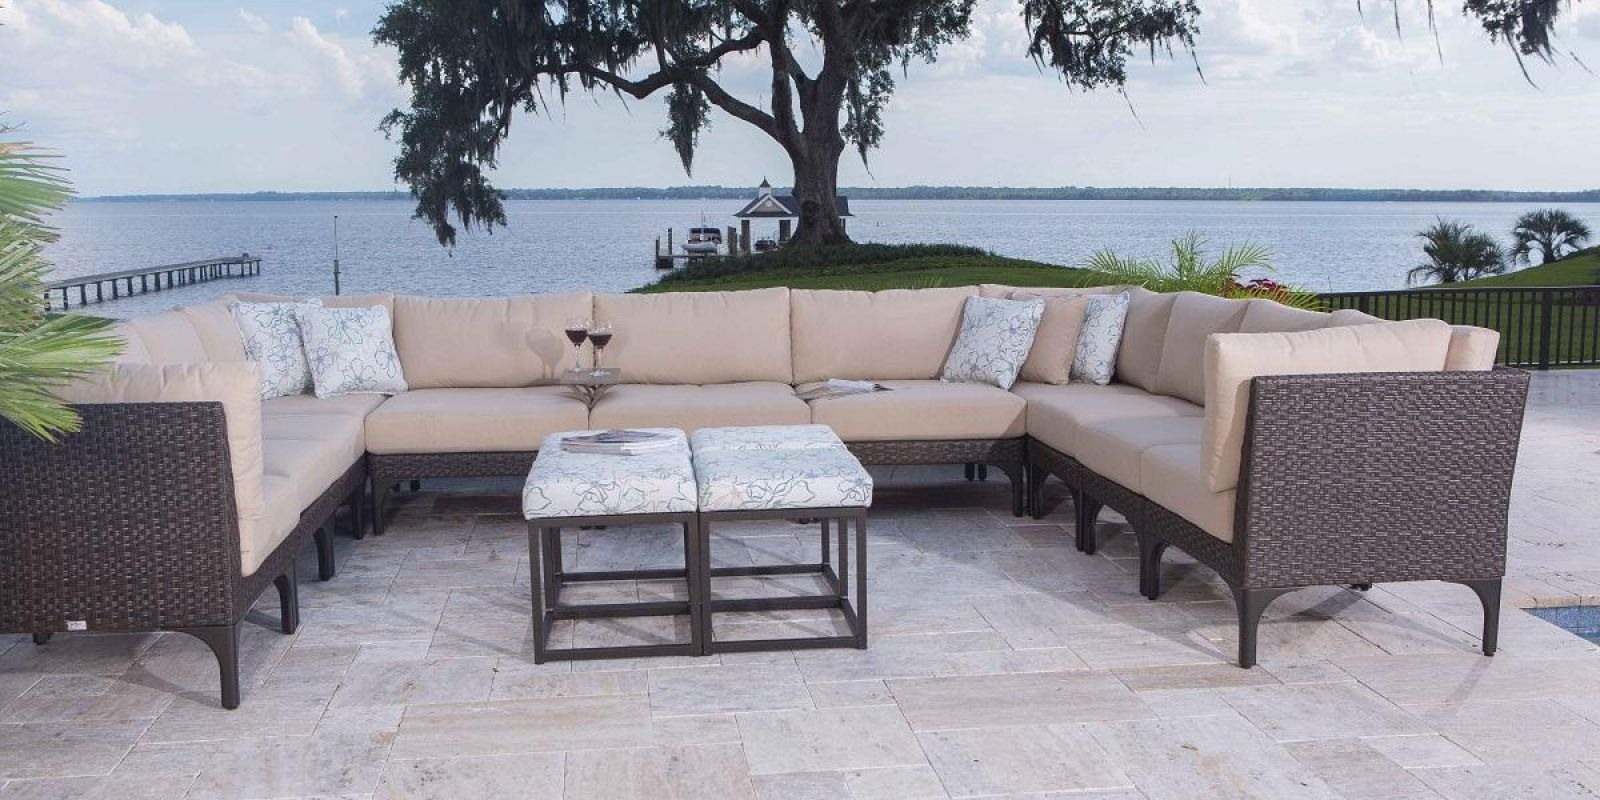 Outdoor Furniture | American Casual Living on Casual Living Patio id=27504